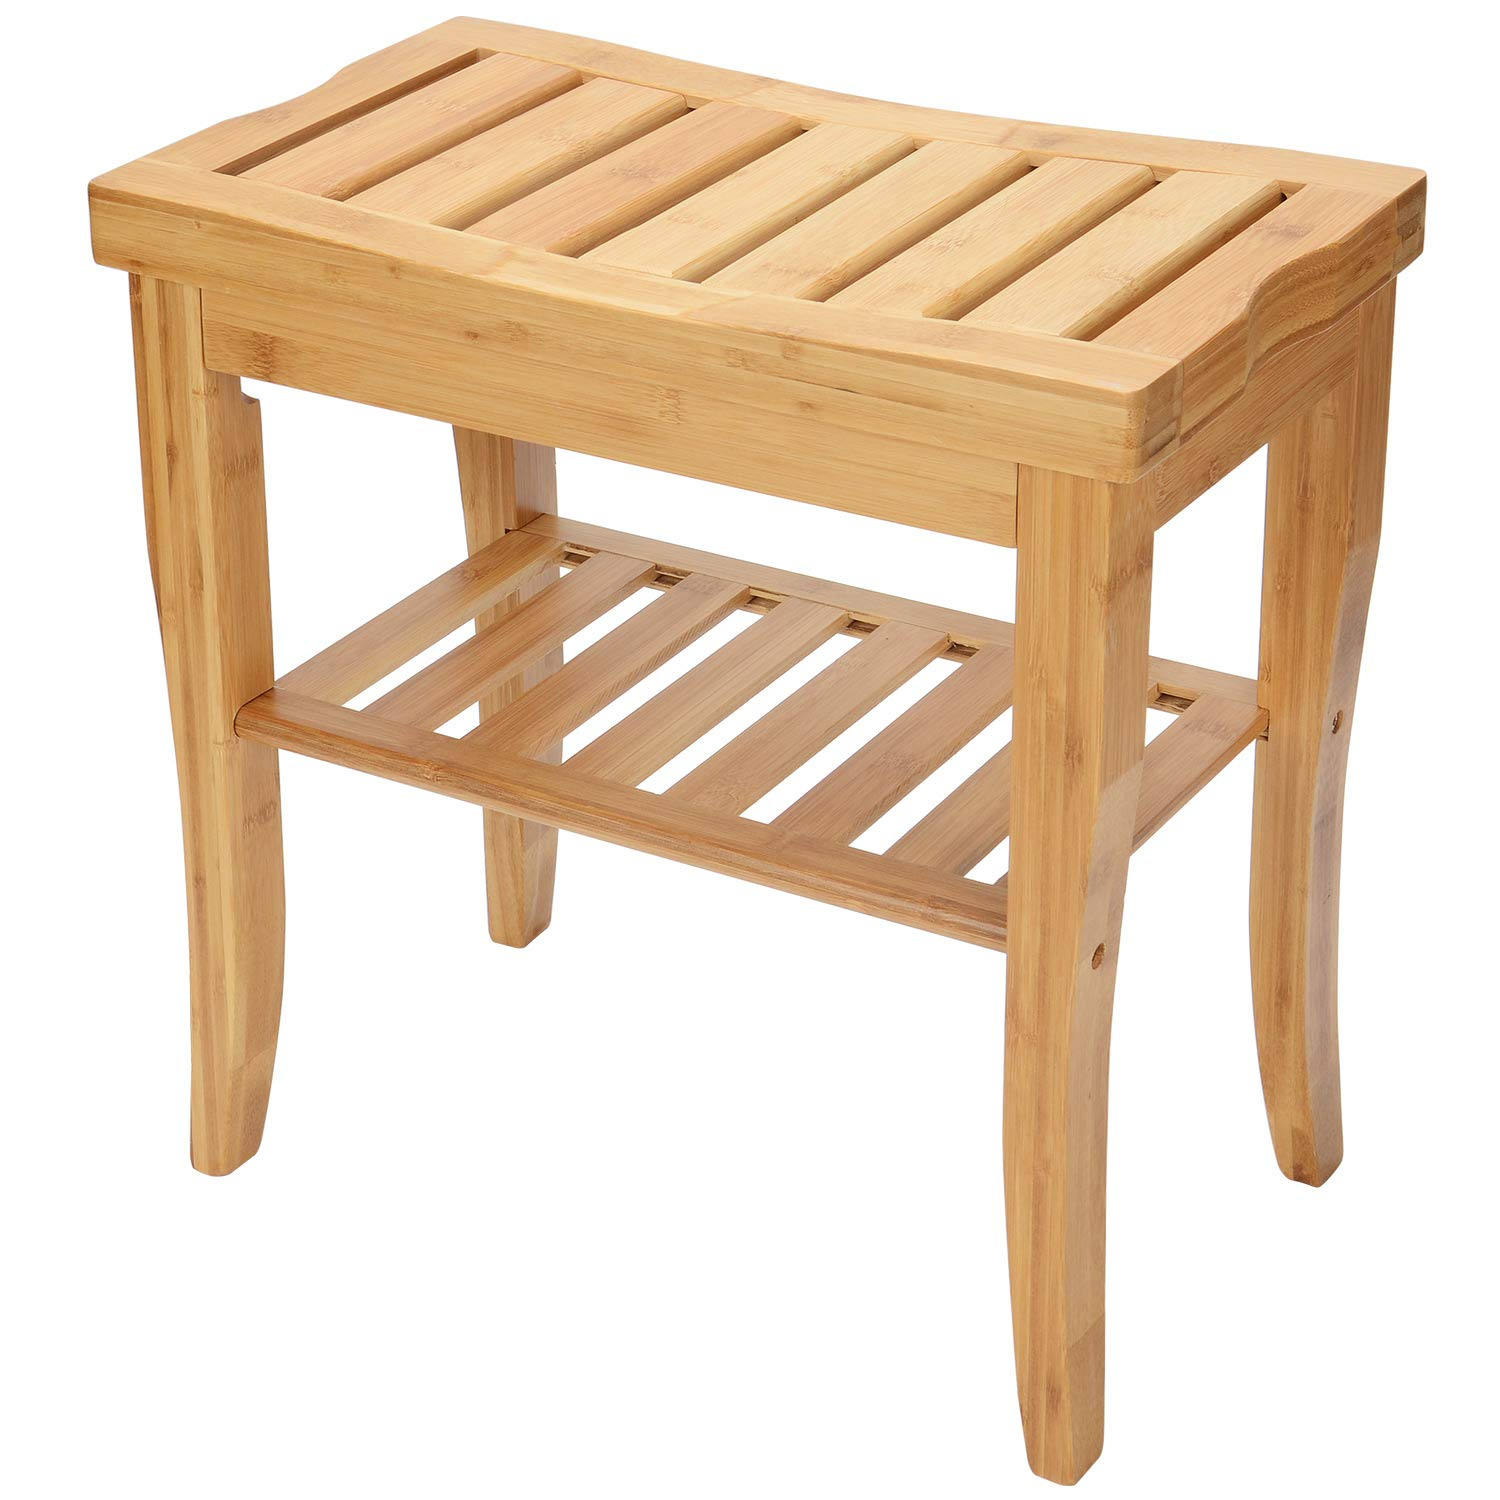 Astounding Bamboo Bathroom Stool Corrente Toddlers Design in proportions 1500 X 1500